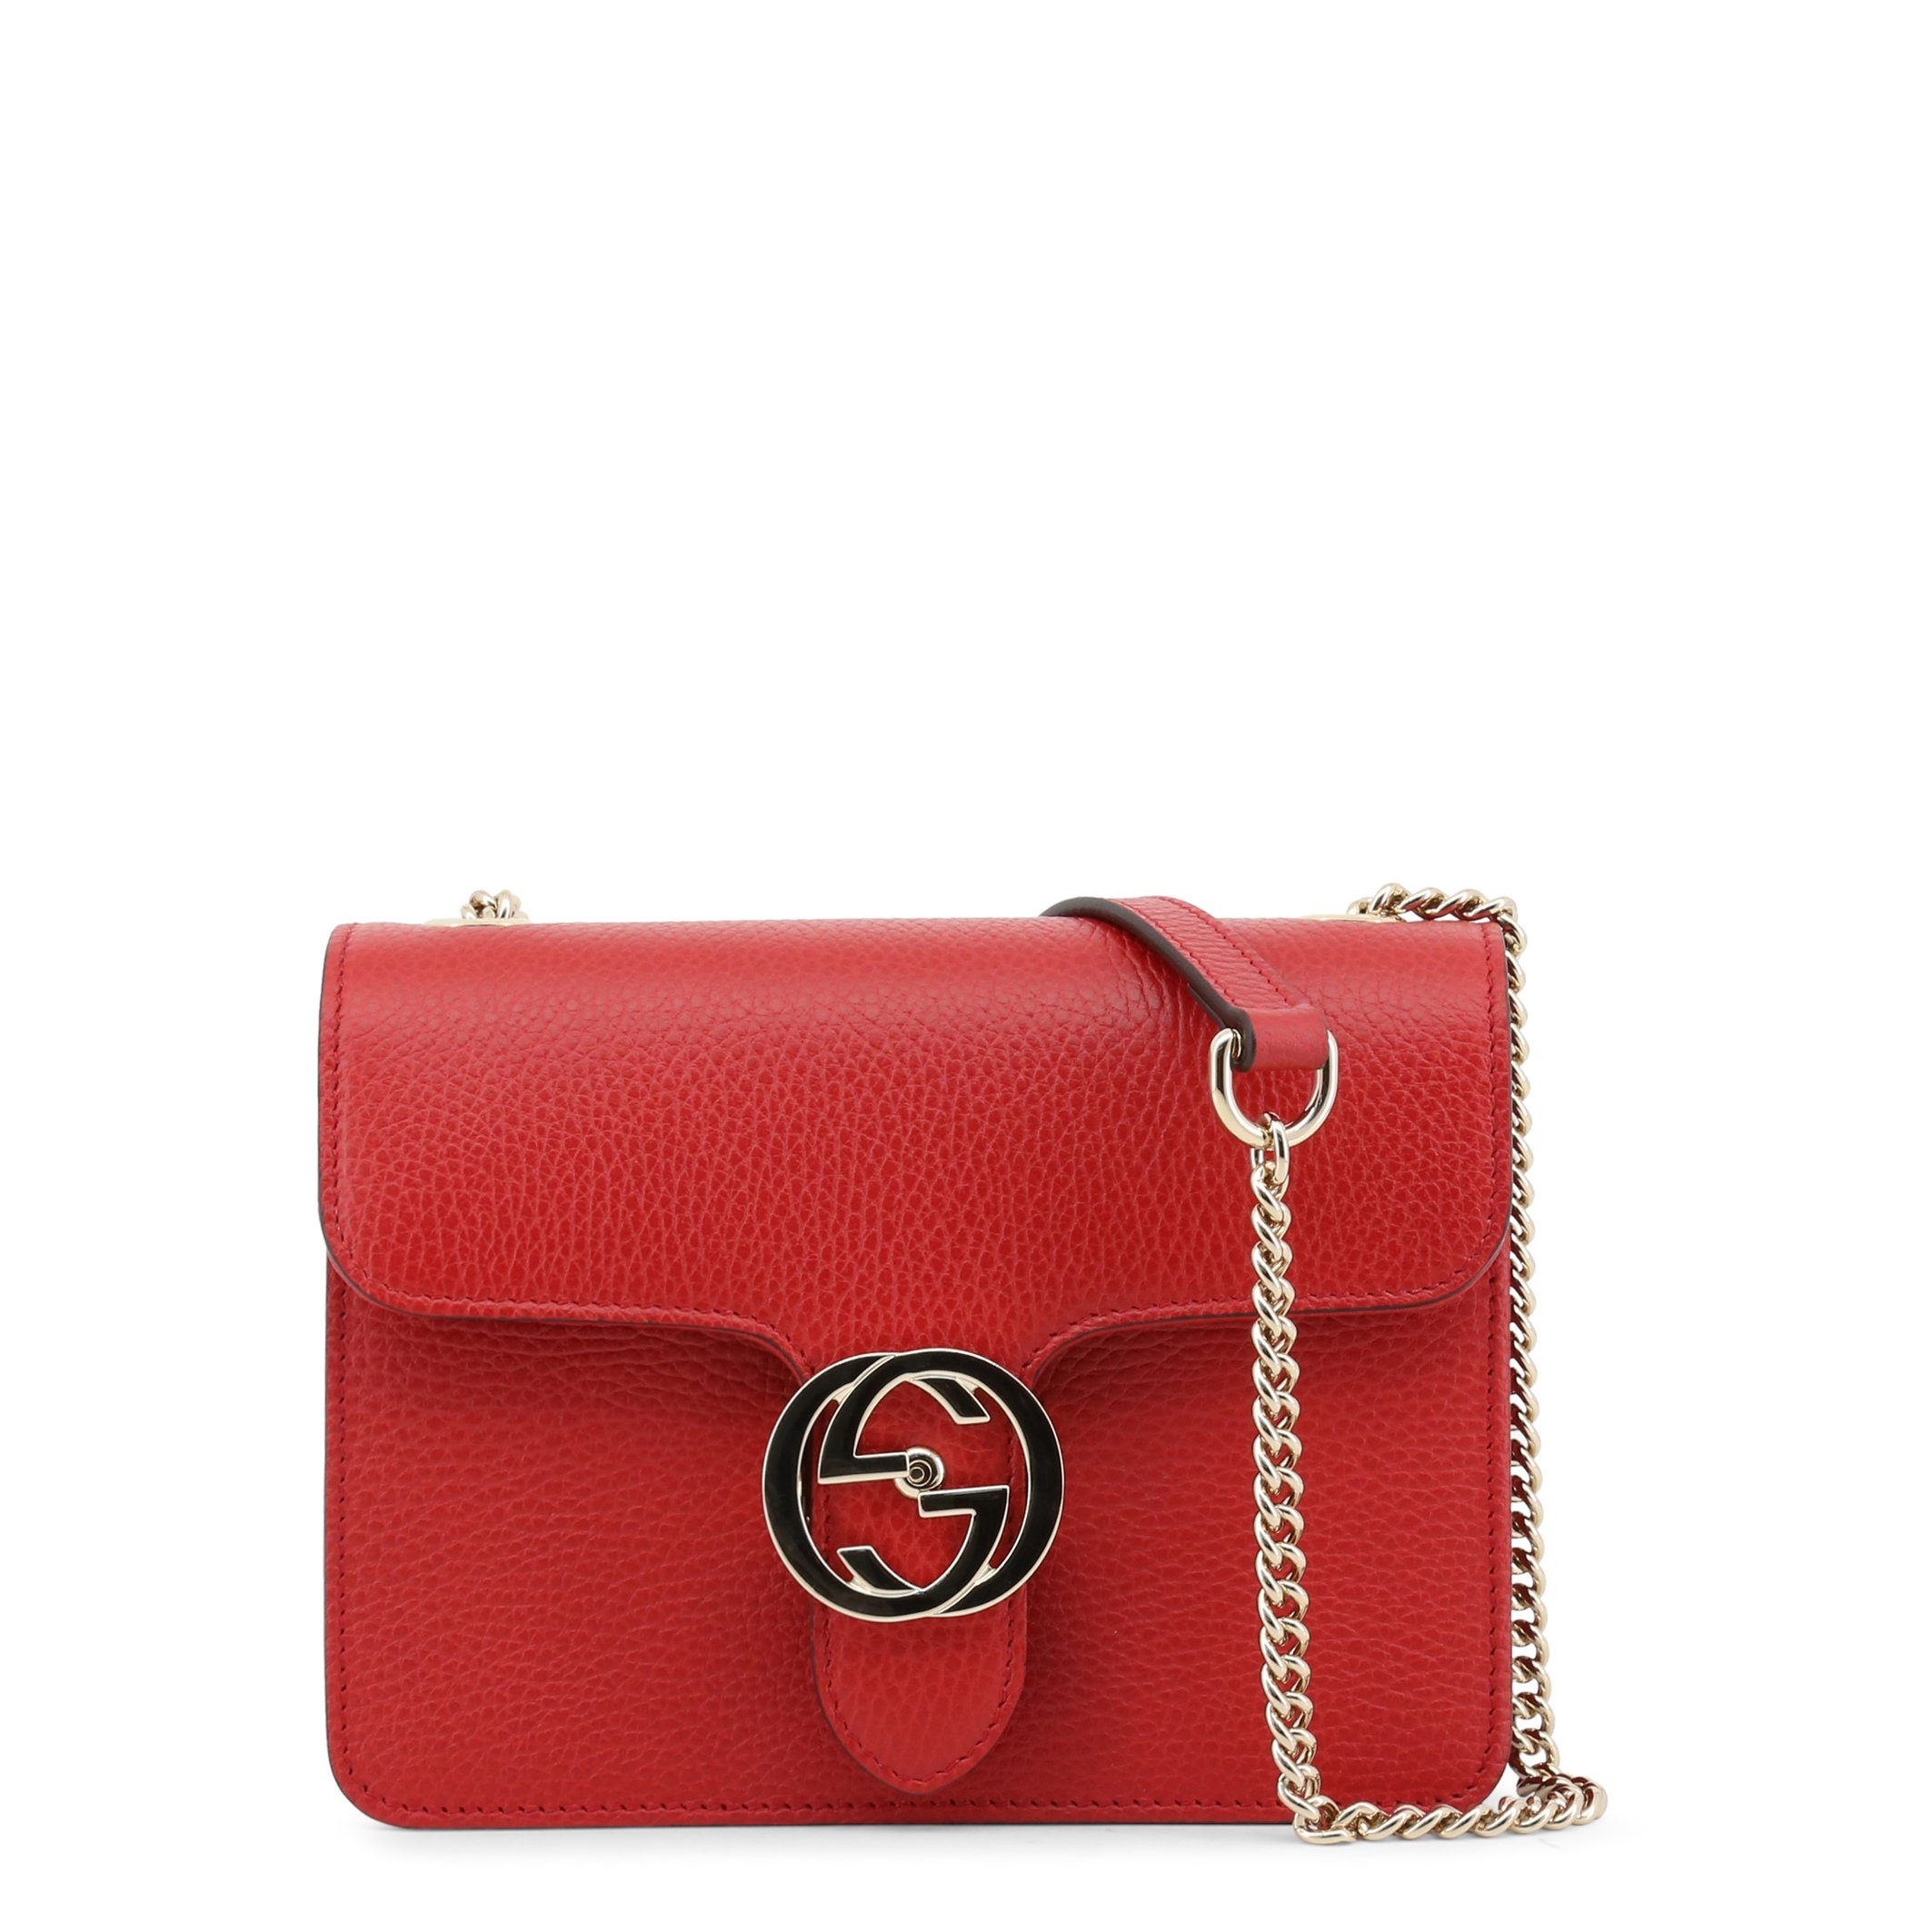 Gucci Women's Crossbody Bag Various Colours 510304_CA00G - red NOSIZE